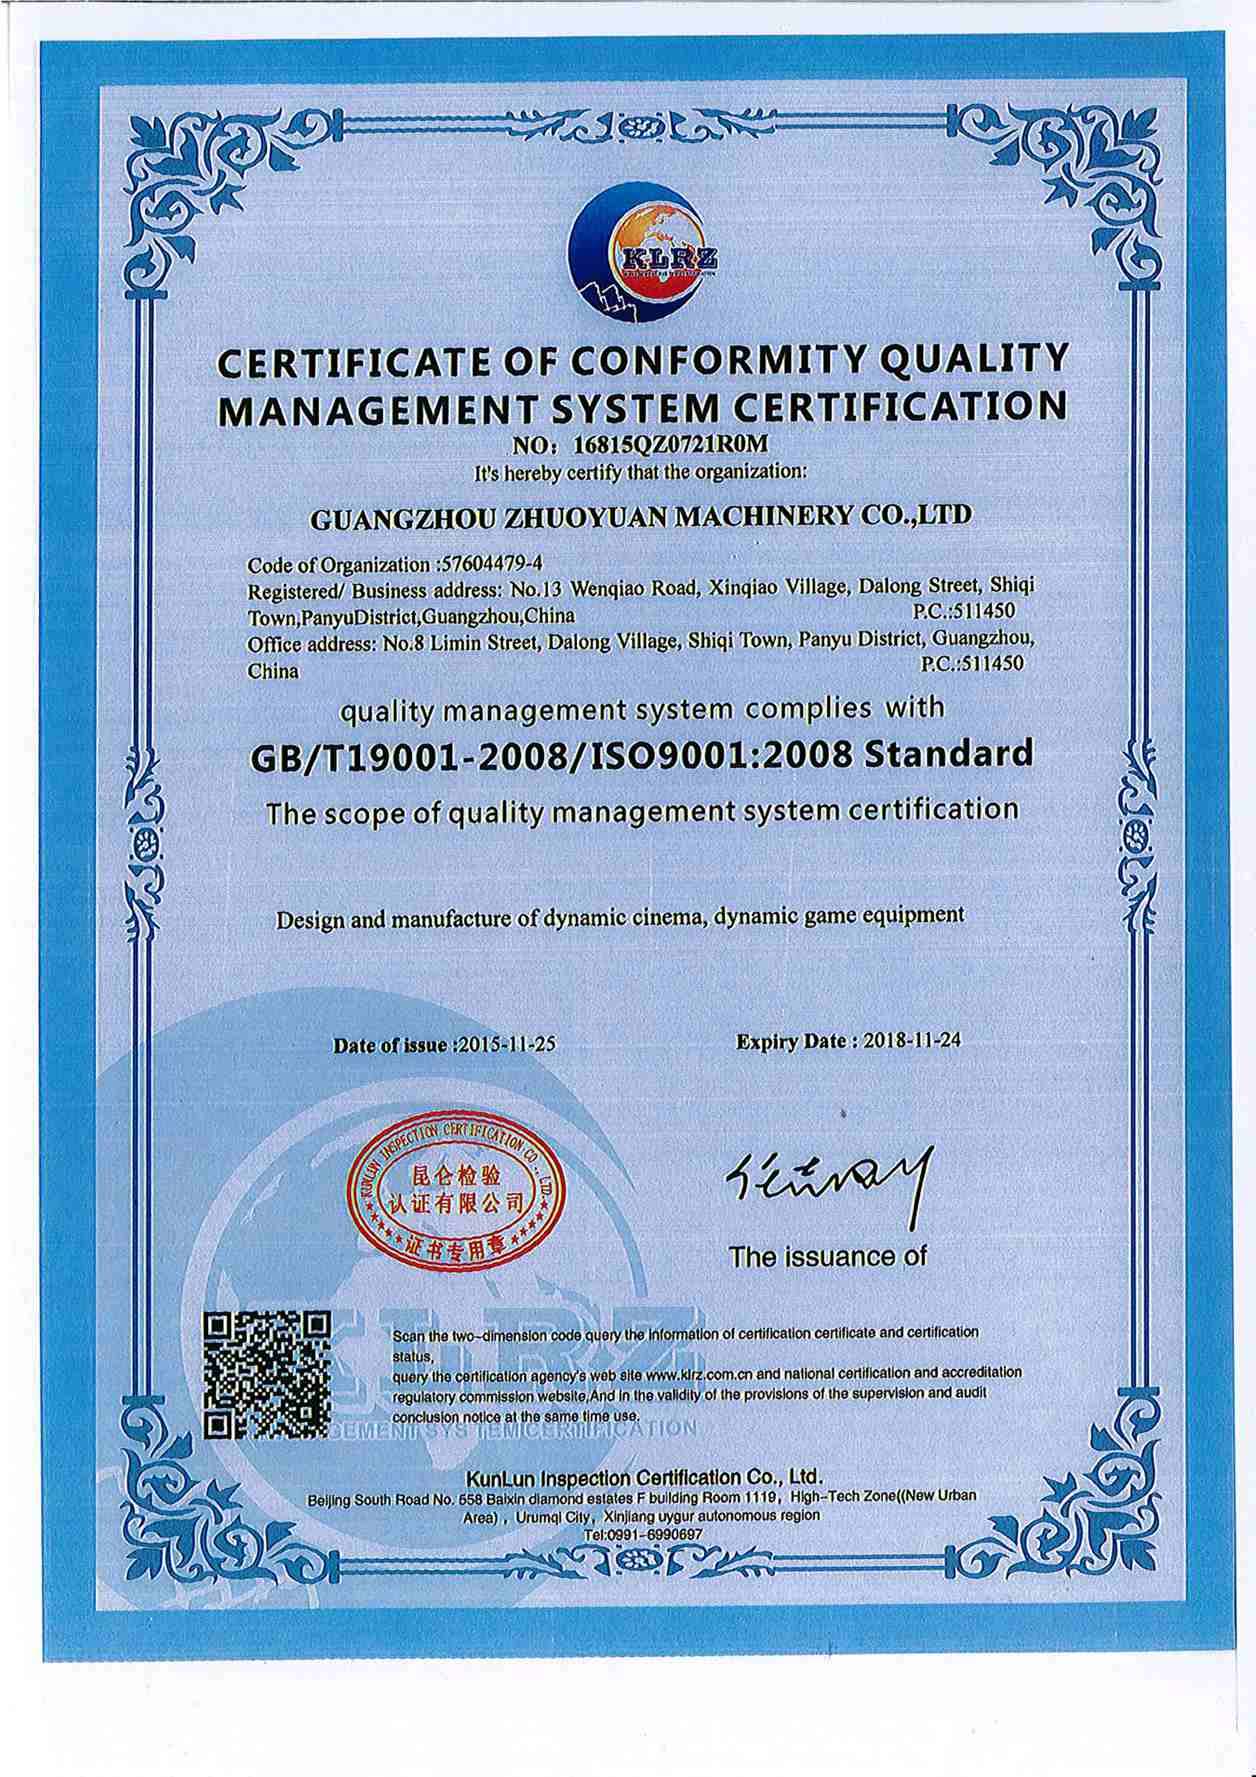 Certifacate Of Conformity Quality Management System Certification